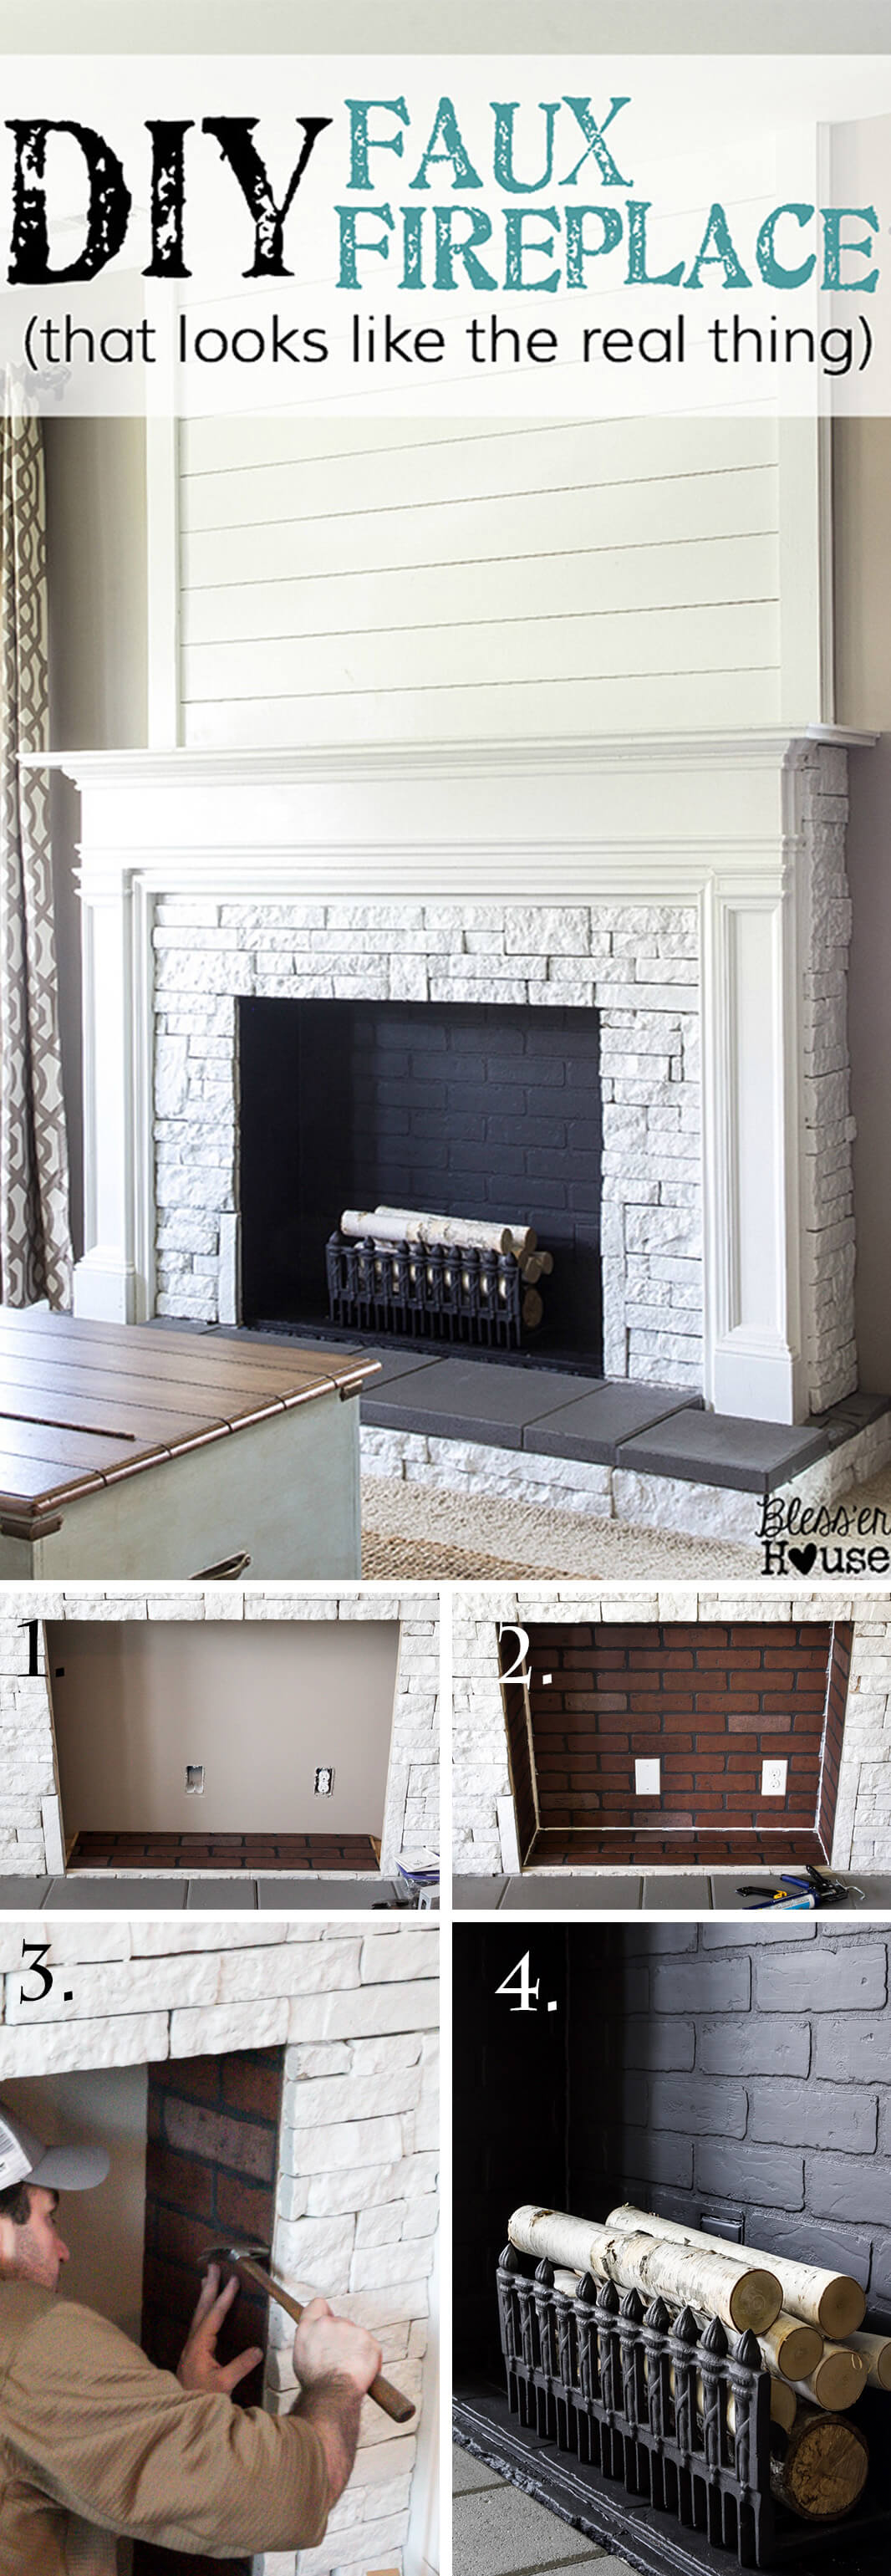 living room decorating pictures color schemes grey couch 45 best diy ideas and designs for 2019 a mock fireplace faux real